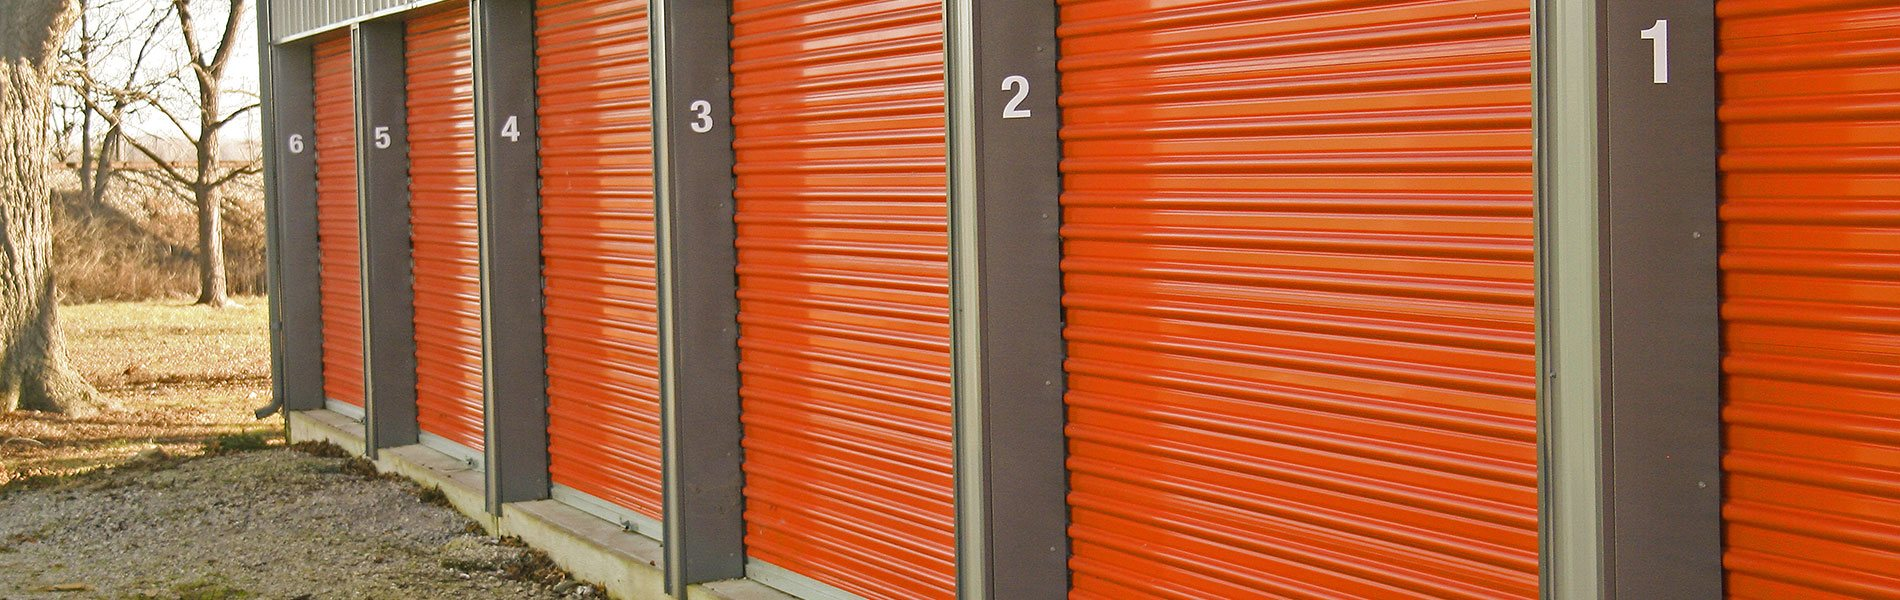 Galaxy Garage Door Service, Brooklyn, NY 347-479-1503